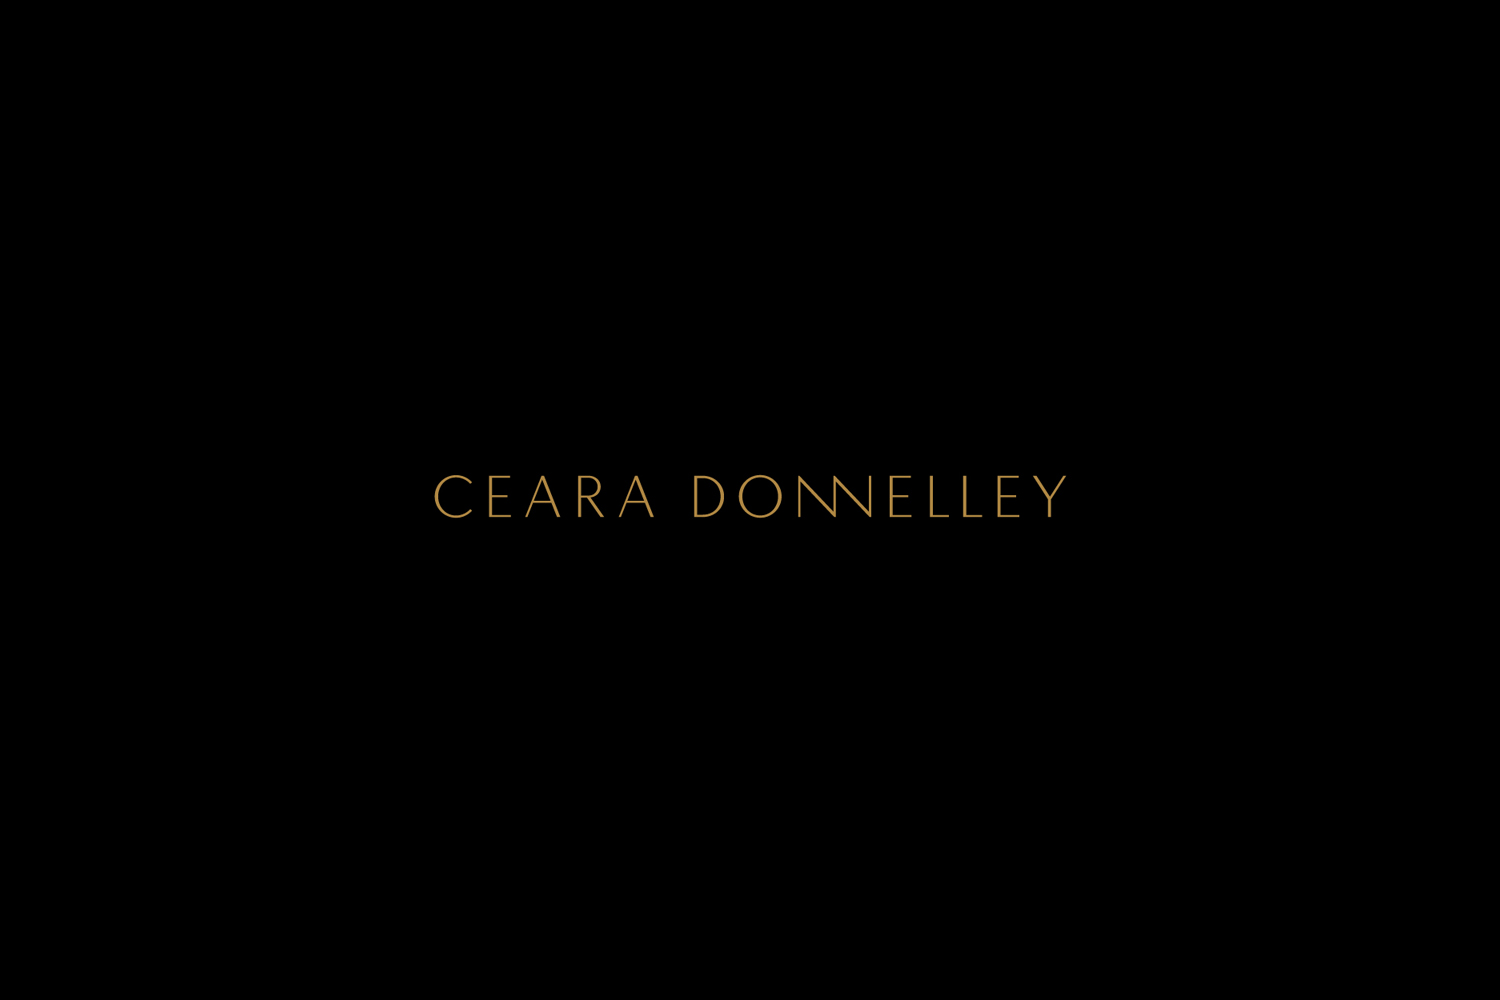 Ceara Donnelley | SDCO Partners